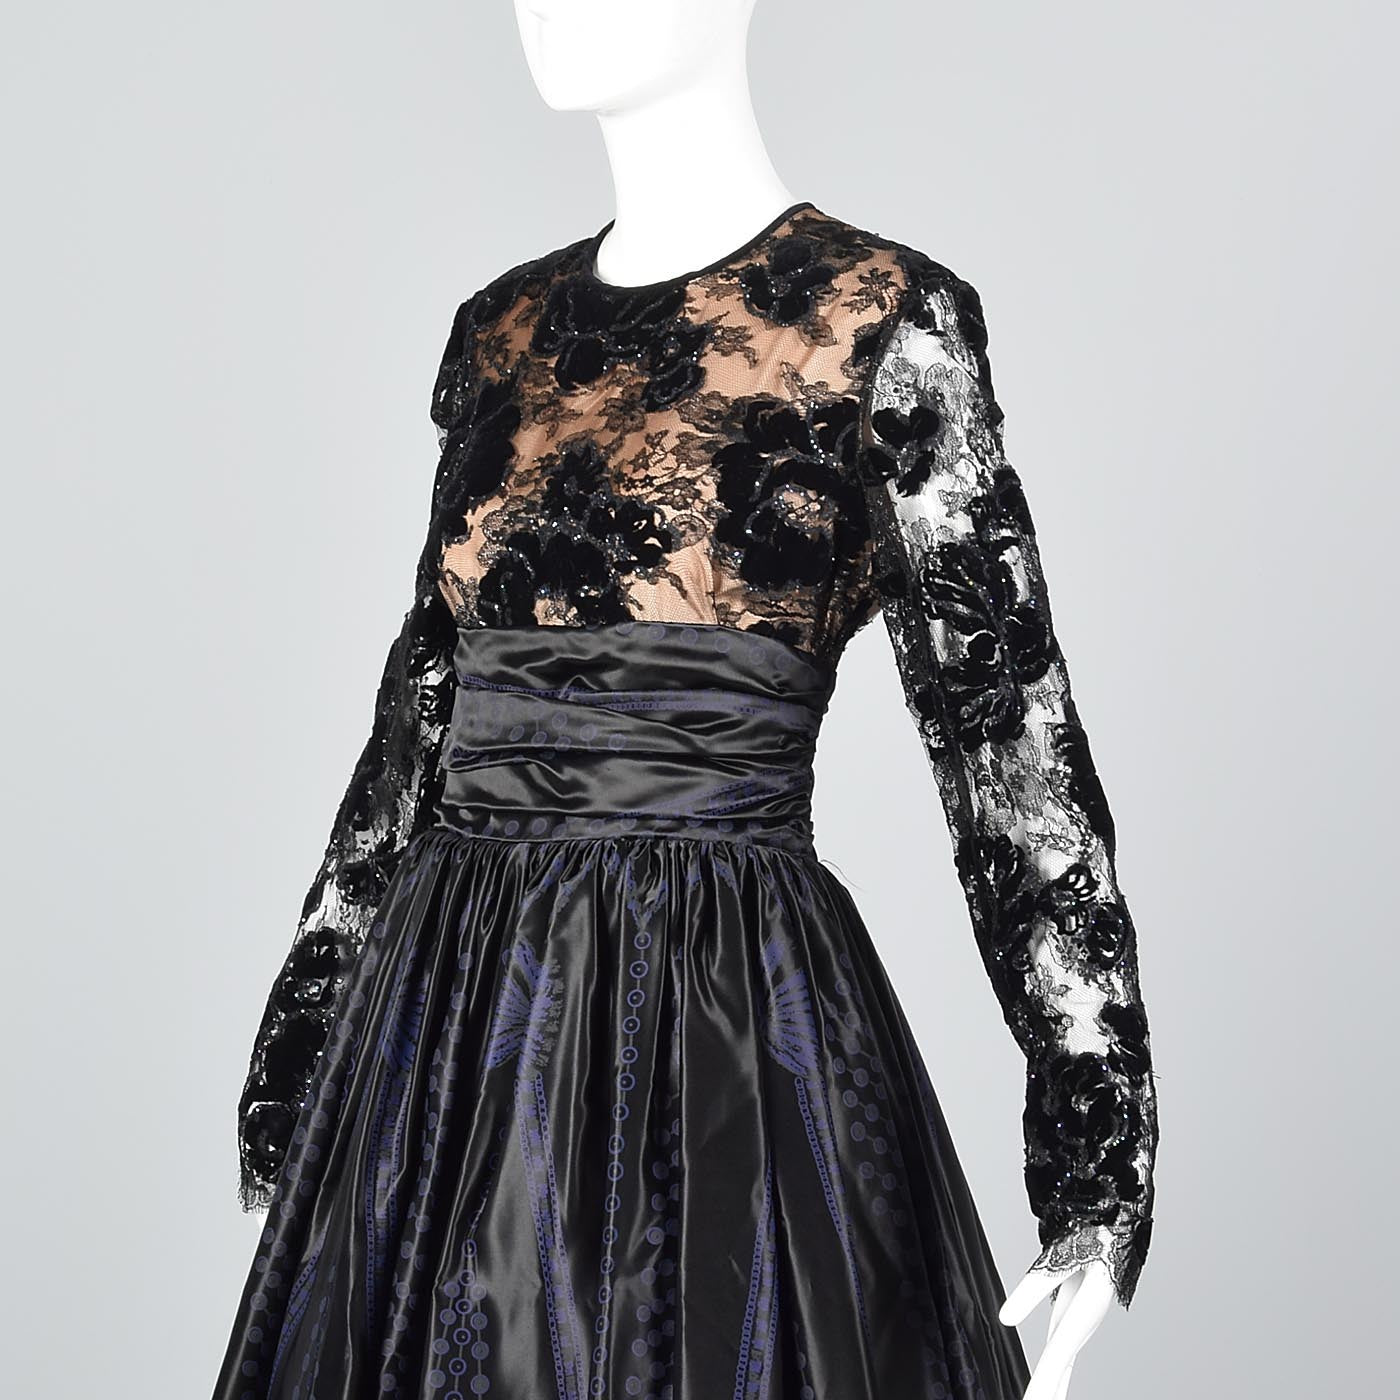 1980s Zandra Rhodes Ball Gown with a Lace Illusion Bodice